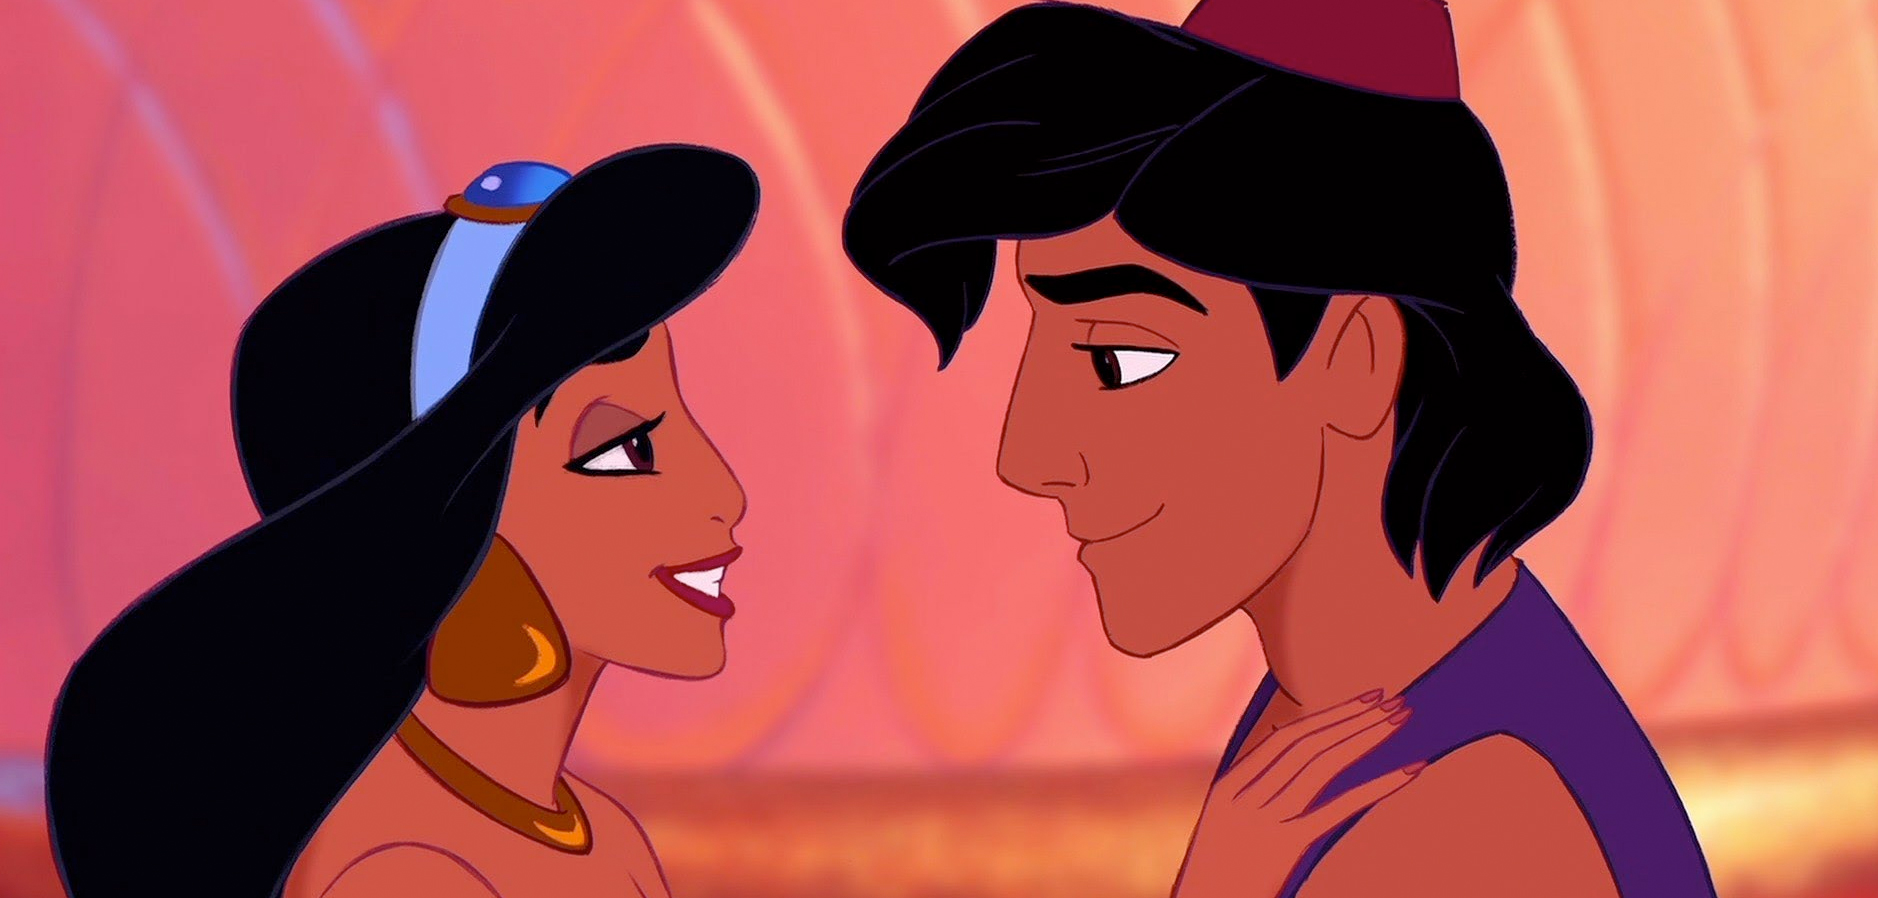 Aladdin Casting Call Disney Is Looking For Two Beautiful Young